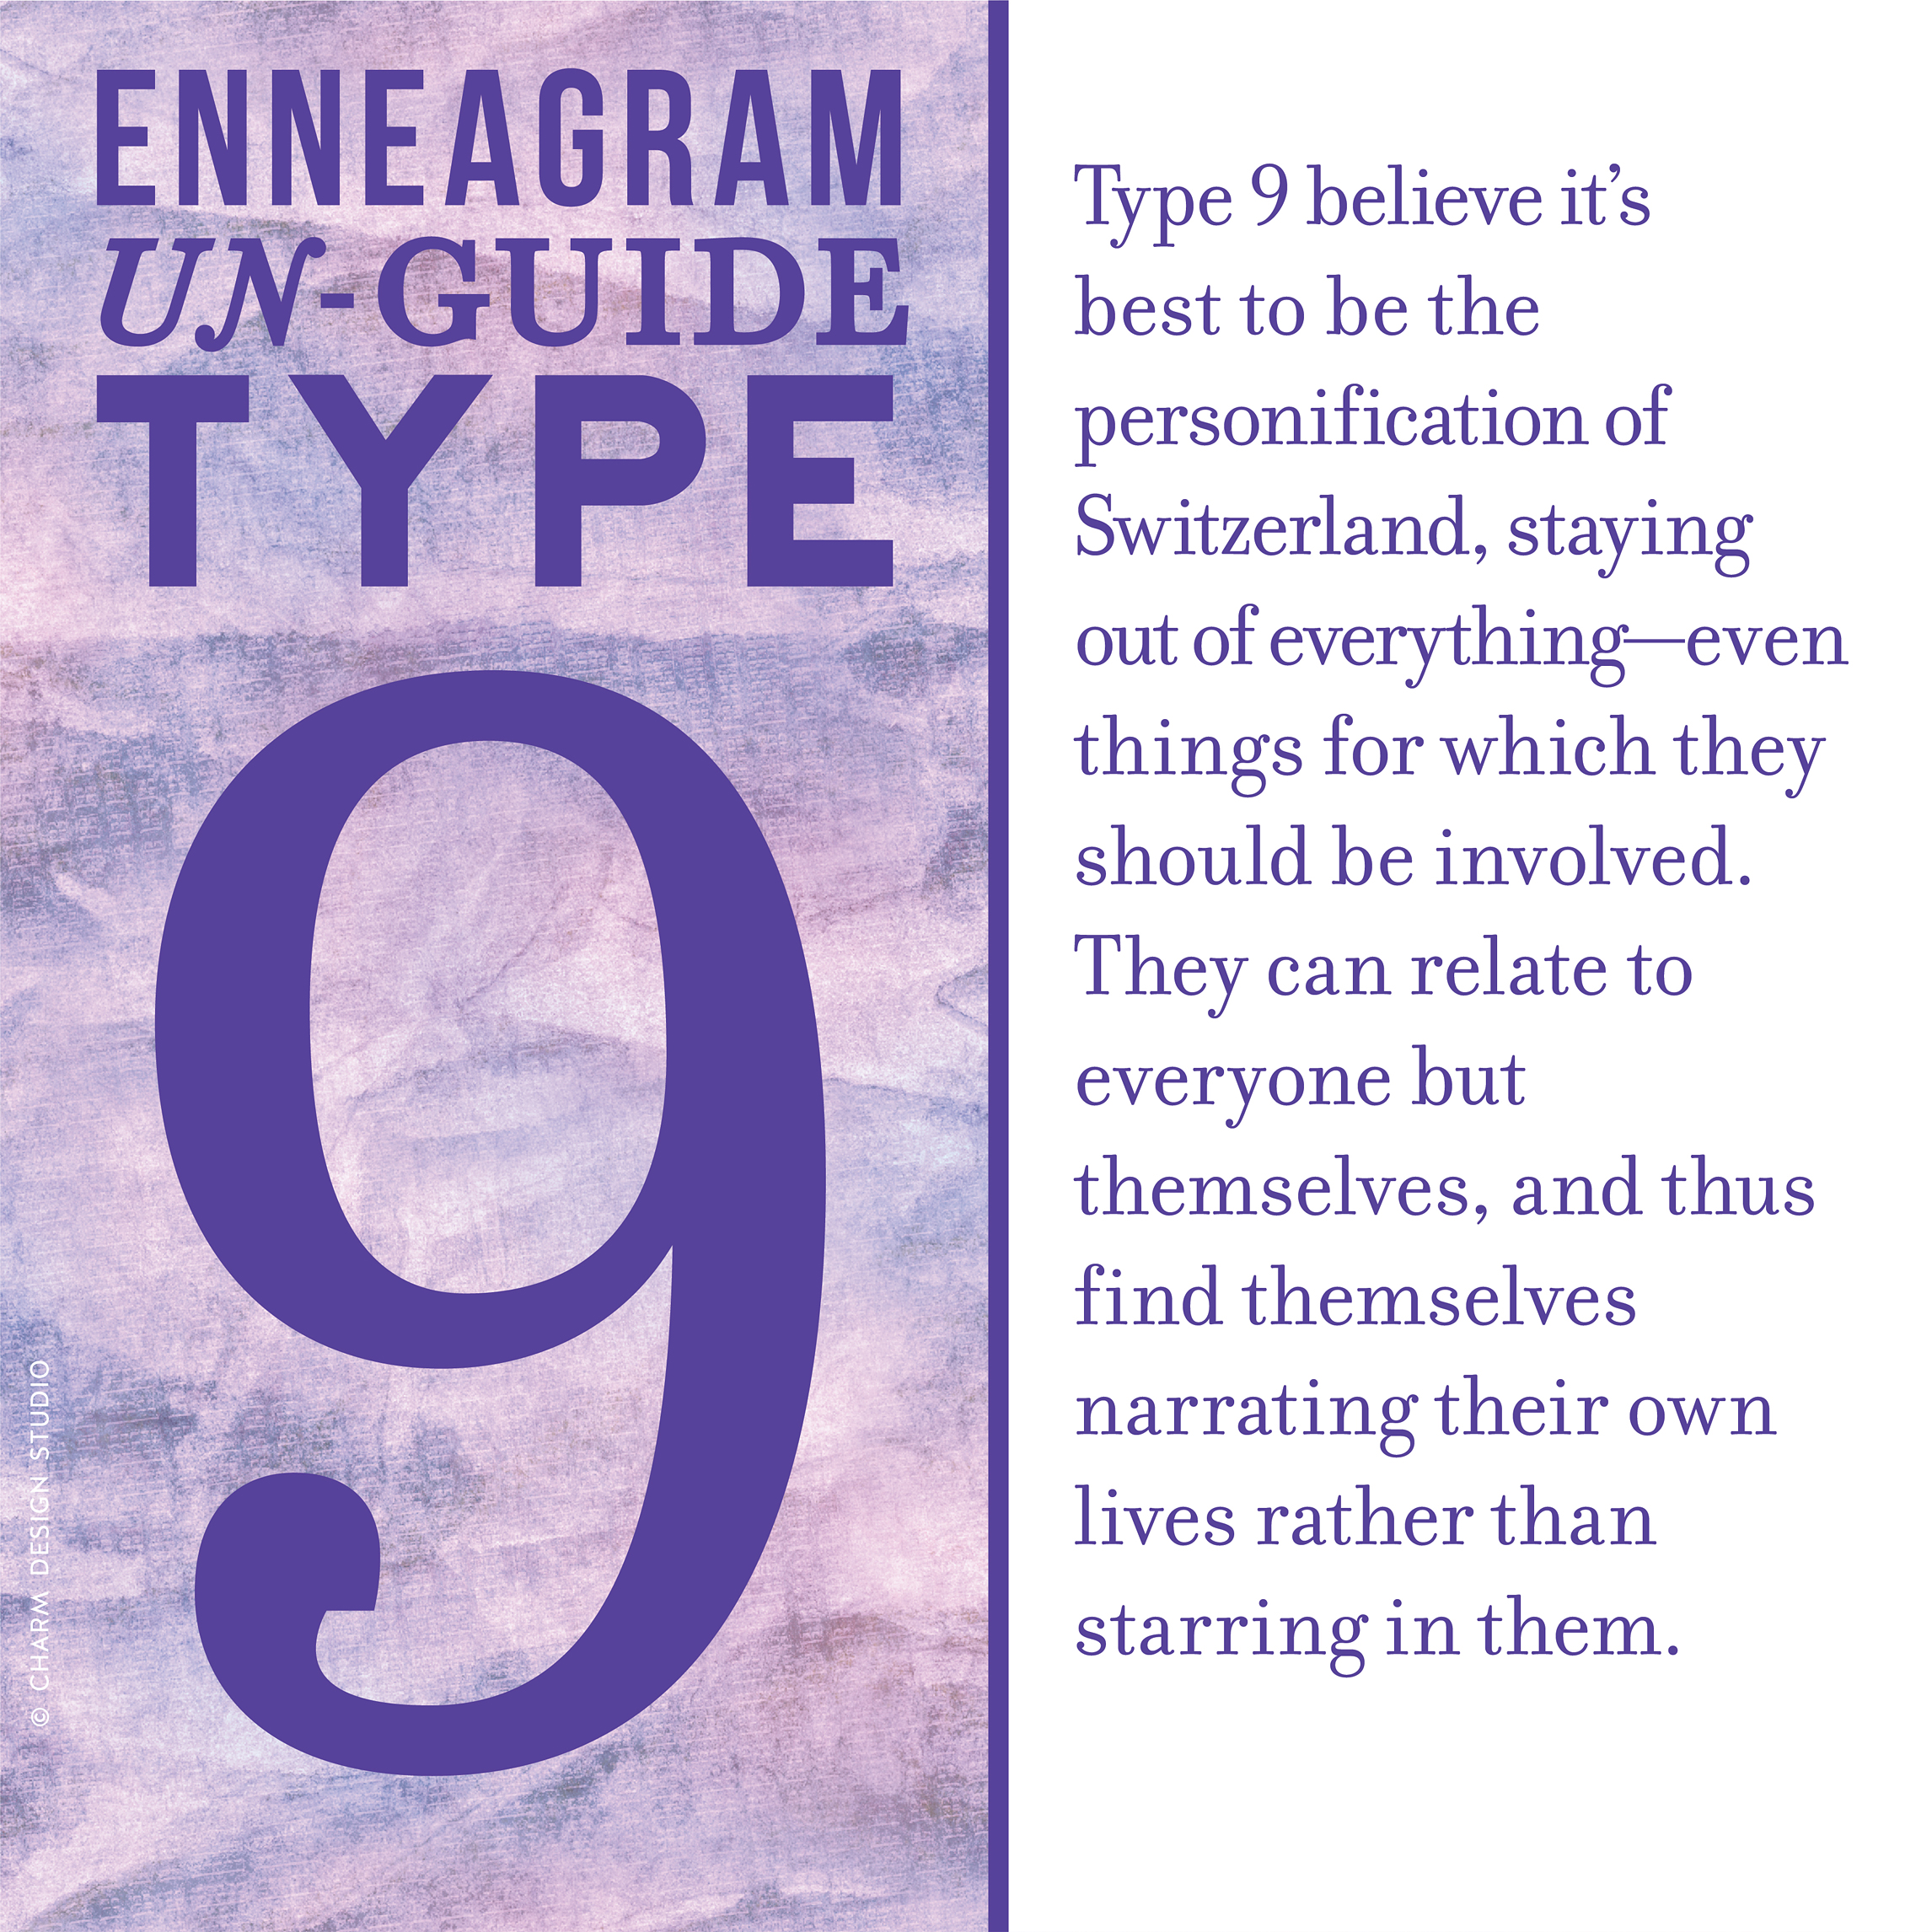 Enneagram Un-Guide: Type 9 believe it's best to be the personification of Switzerland, staying out of everything—even things for which they should be involved. They can relate to everyone but themselves, and thus find themselves narrating their own lives rather than starring in them. / Design and words © Charm Design Studio